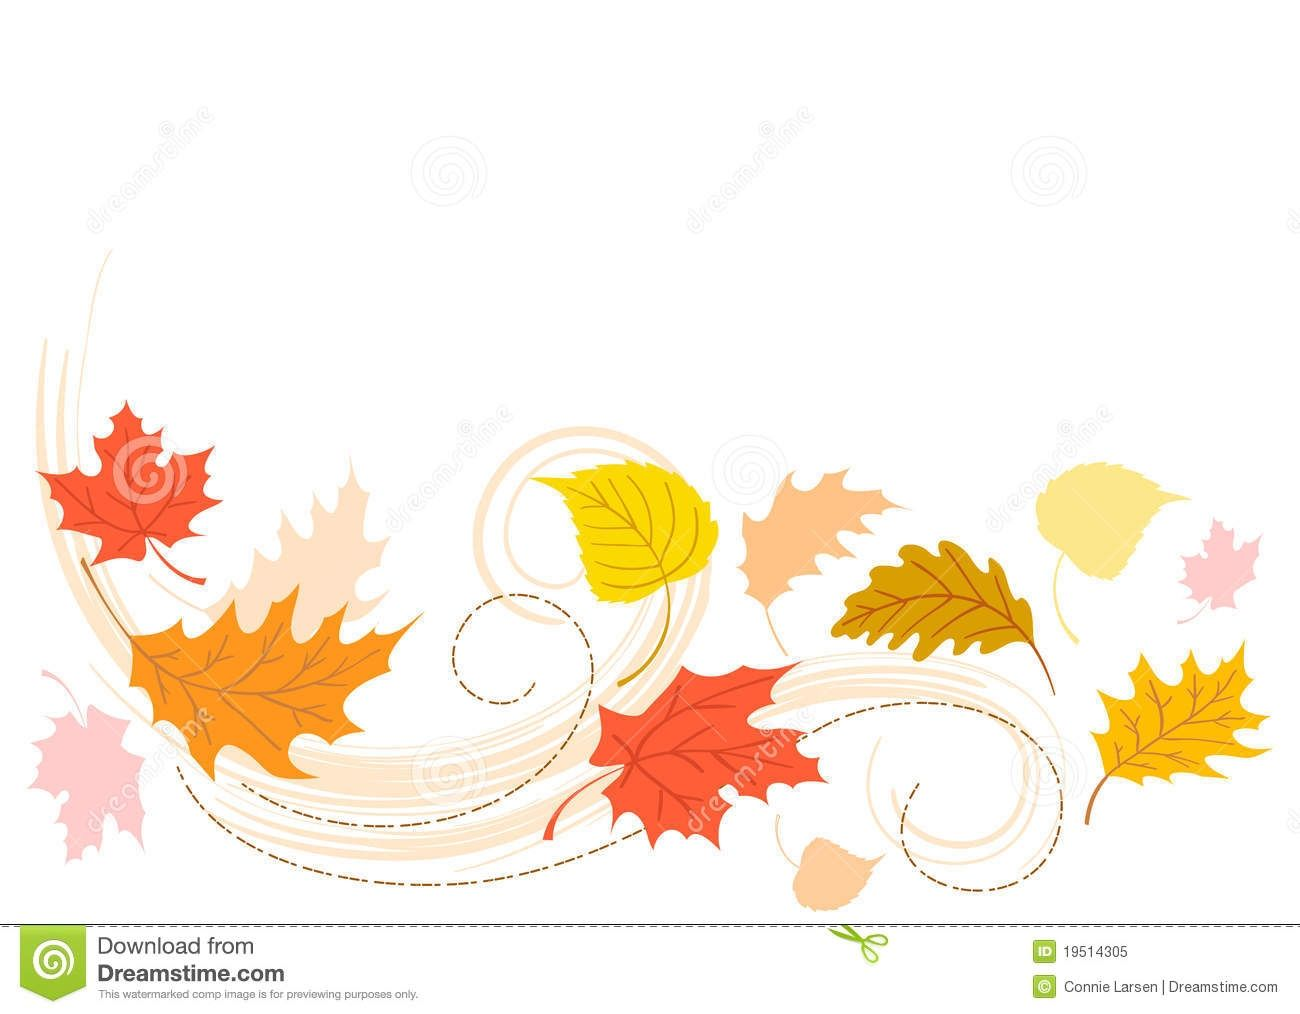 Wind blowing leaves clipart clip art transparent download Blowing Autumn Fall Leaves/eps | Fall | Autumn leaves ... clip art transparent download